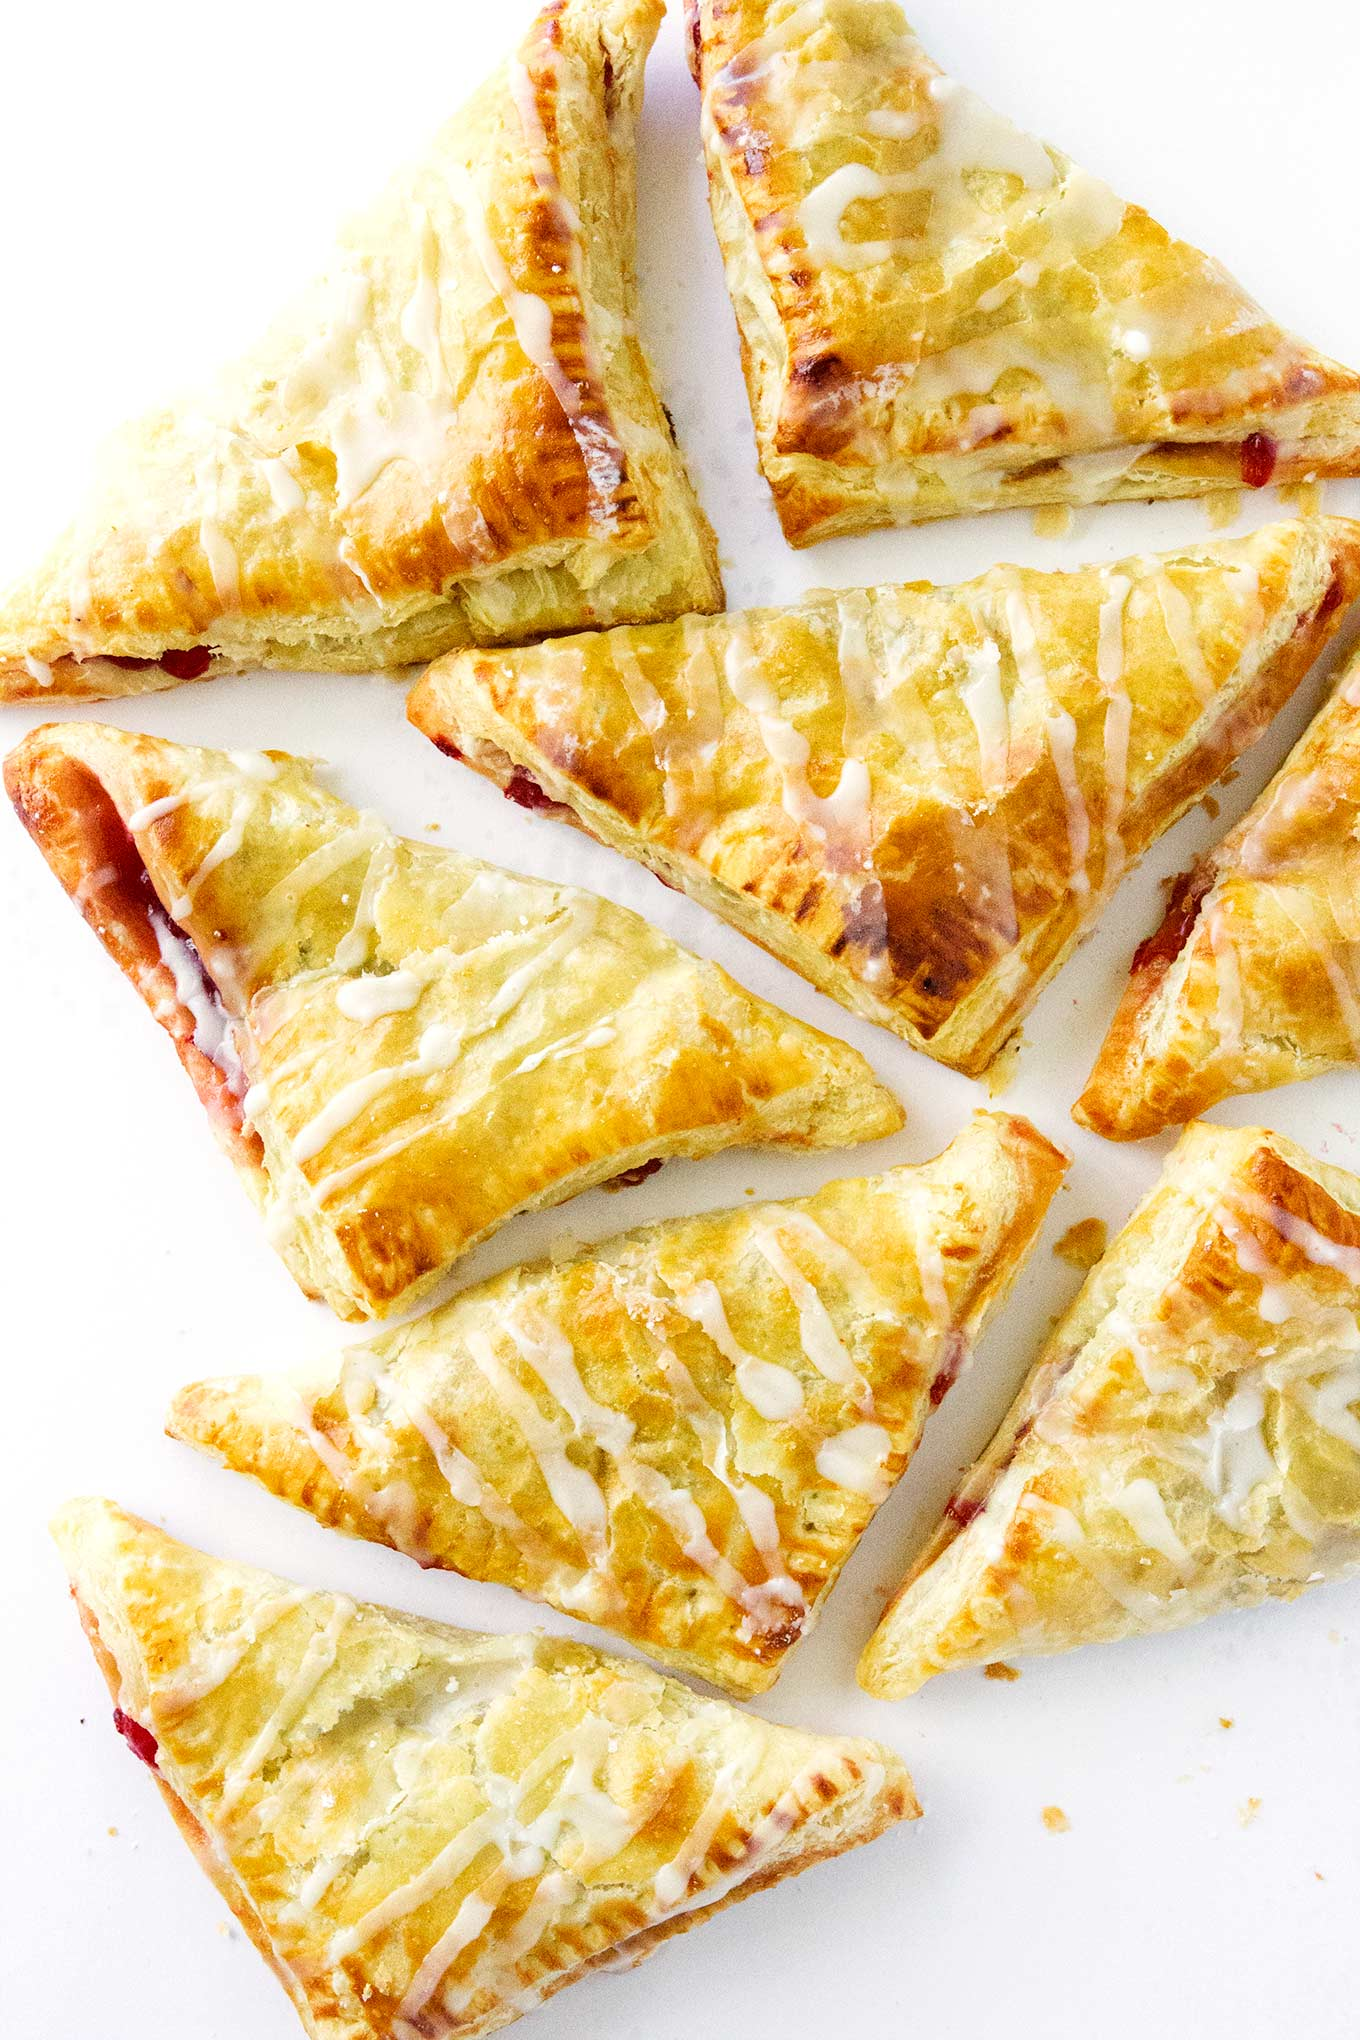 These puff pastry turnovers are so incredibly easy to make! All you need is puff pastry sheets and a can of any flavor of pie filling and you got yourself some deliciously scrumptious puff pastry turnovers. Winning!